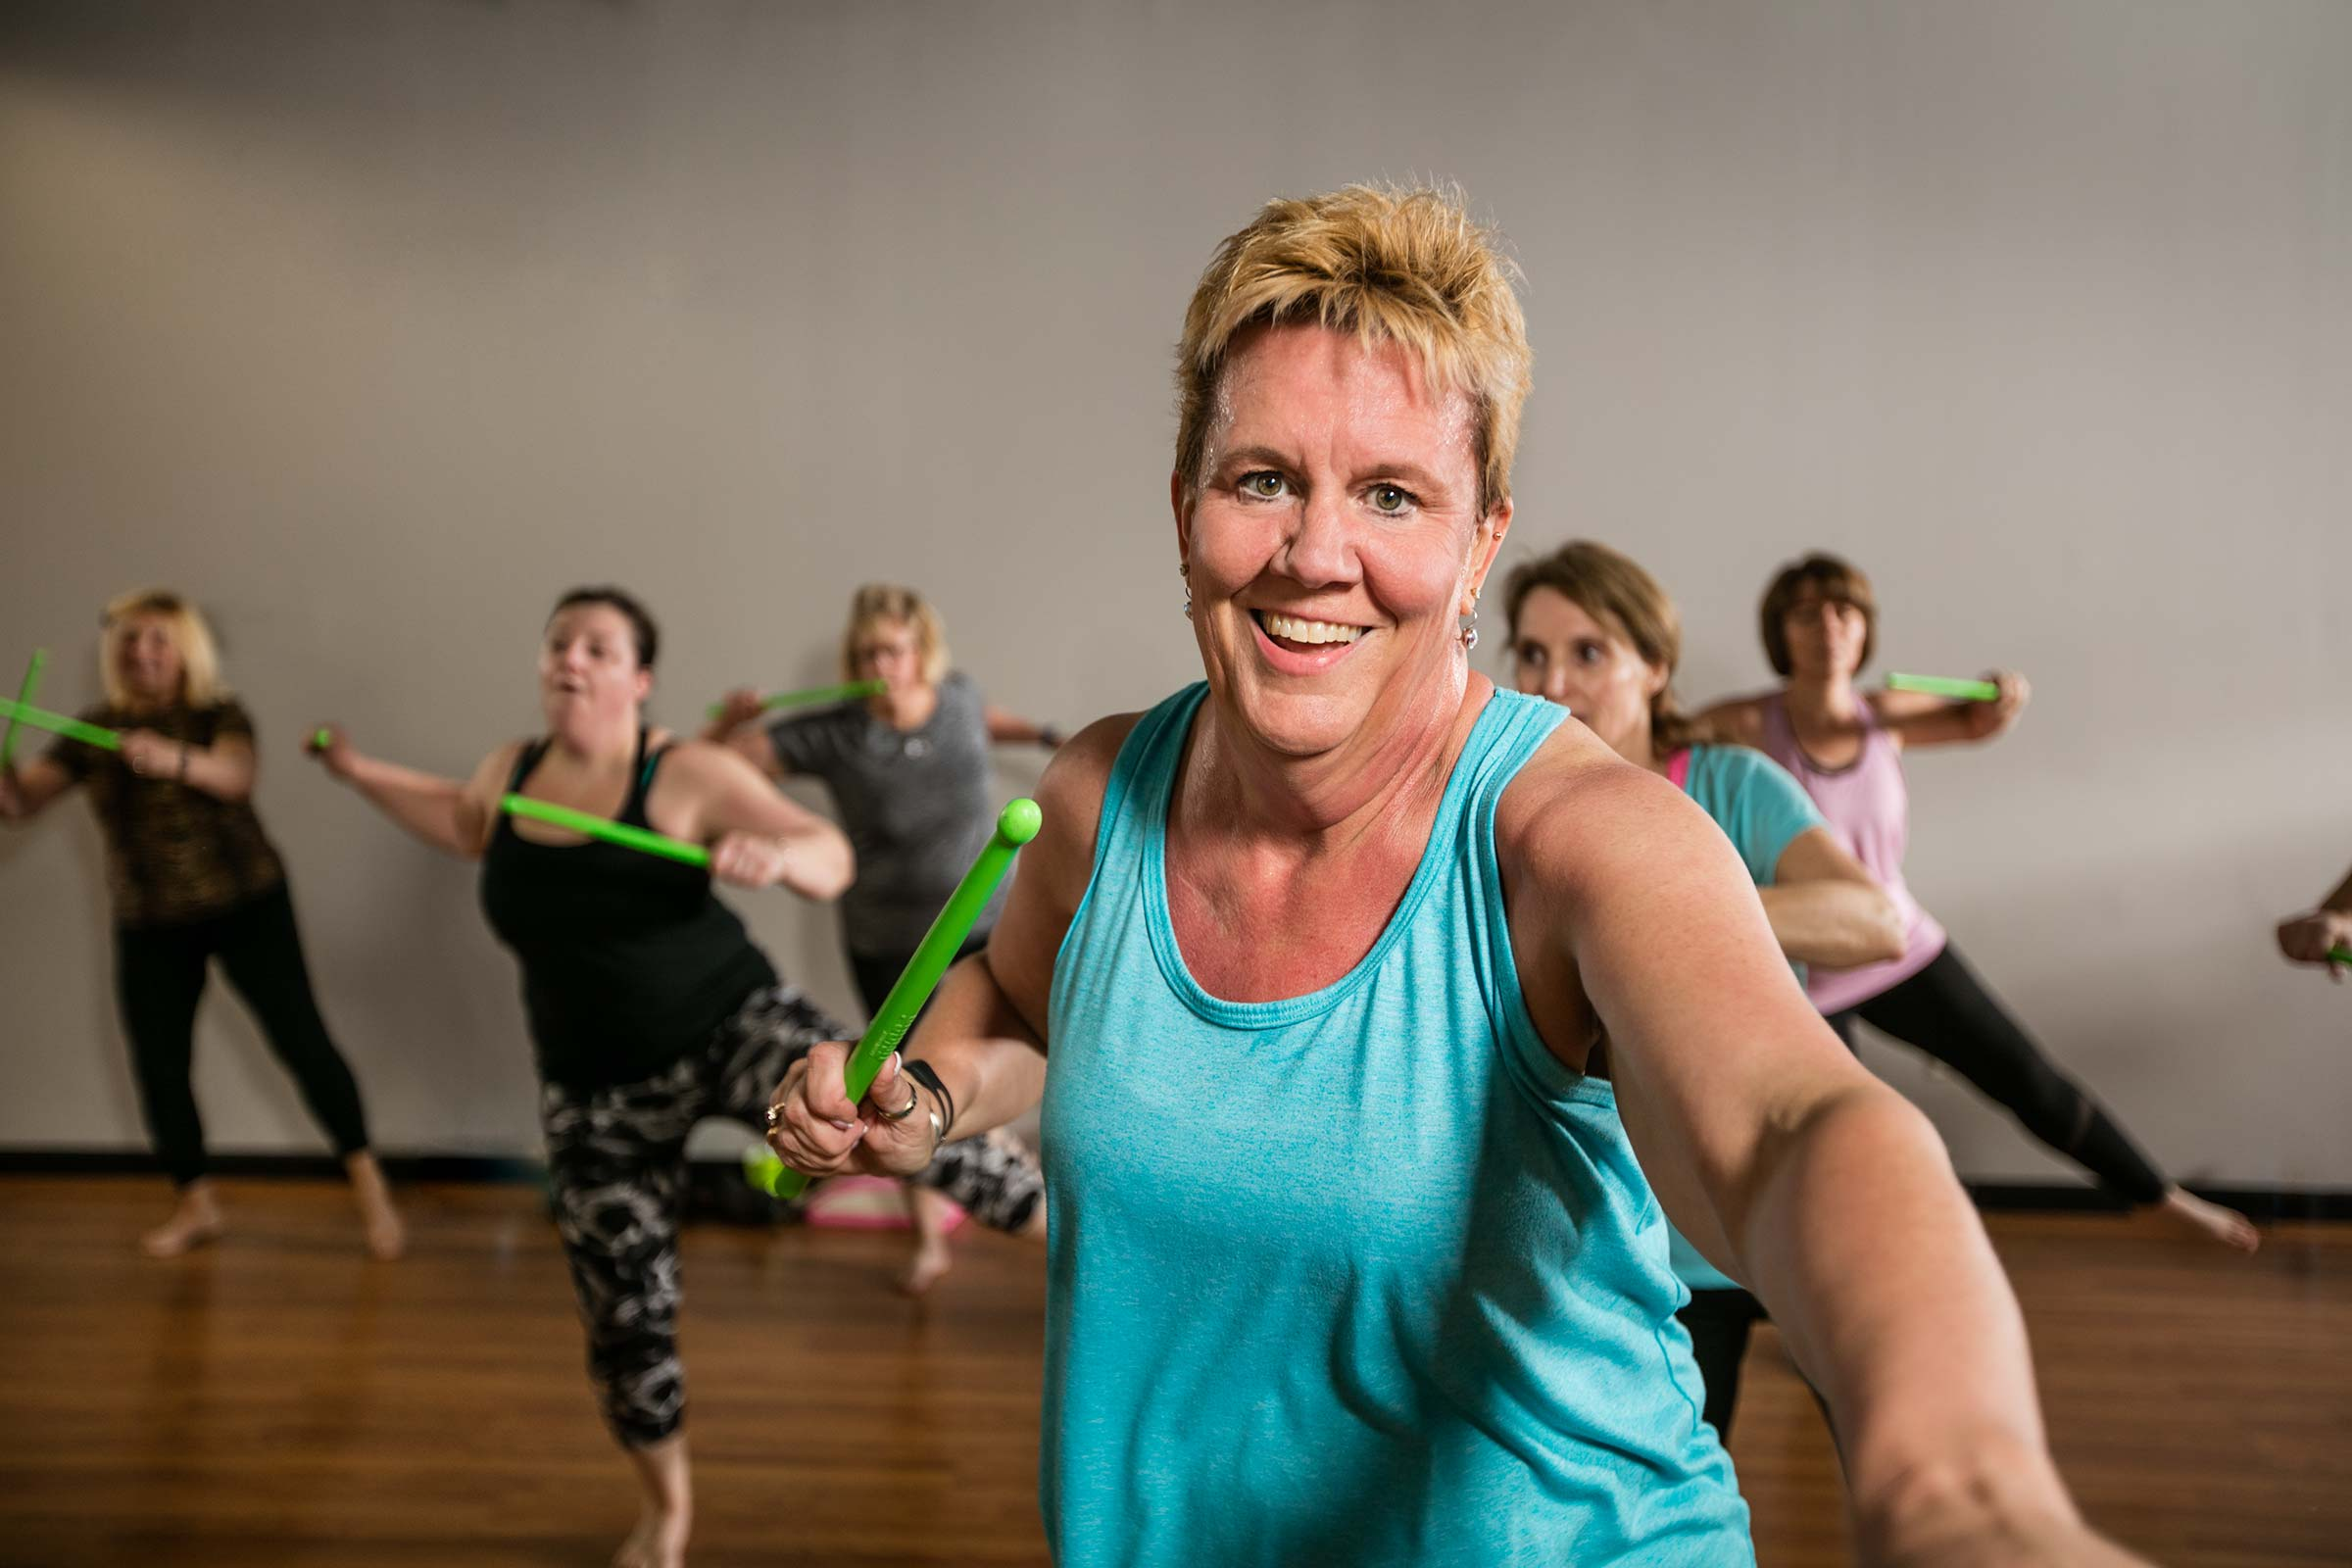 action shot of smiling older woman enagaged in healthy workout